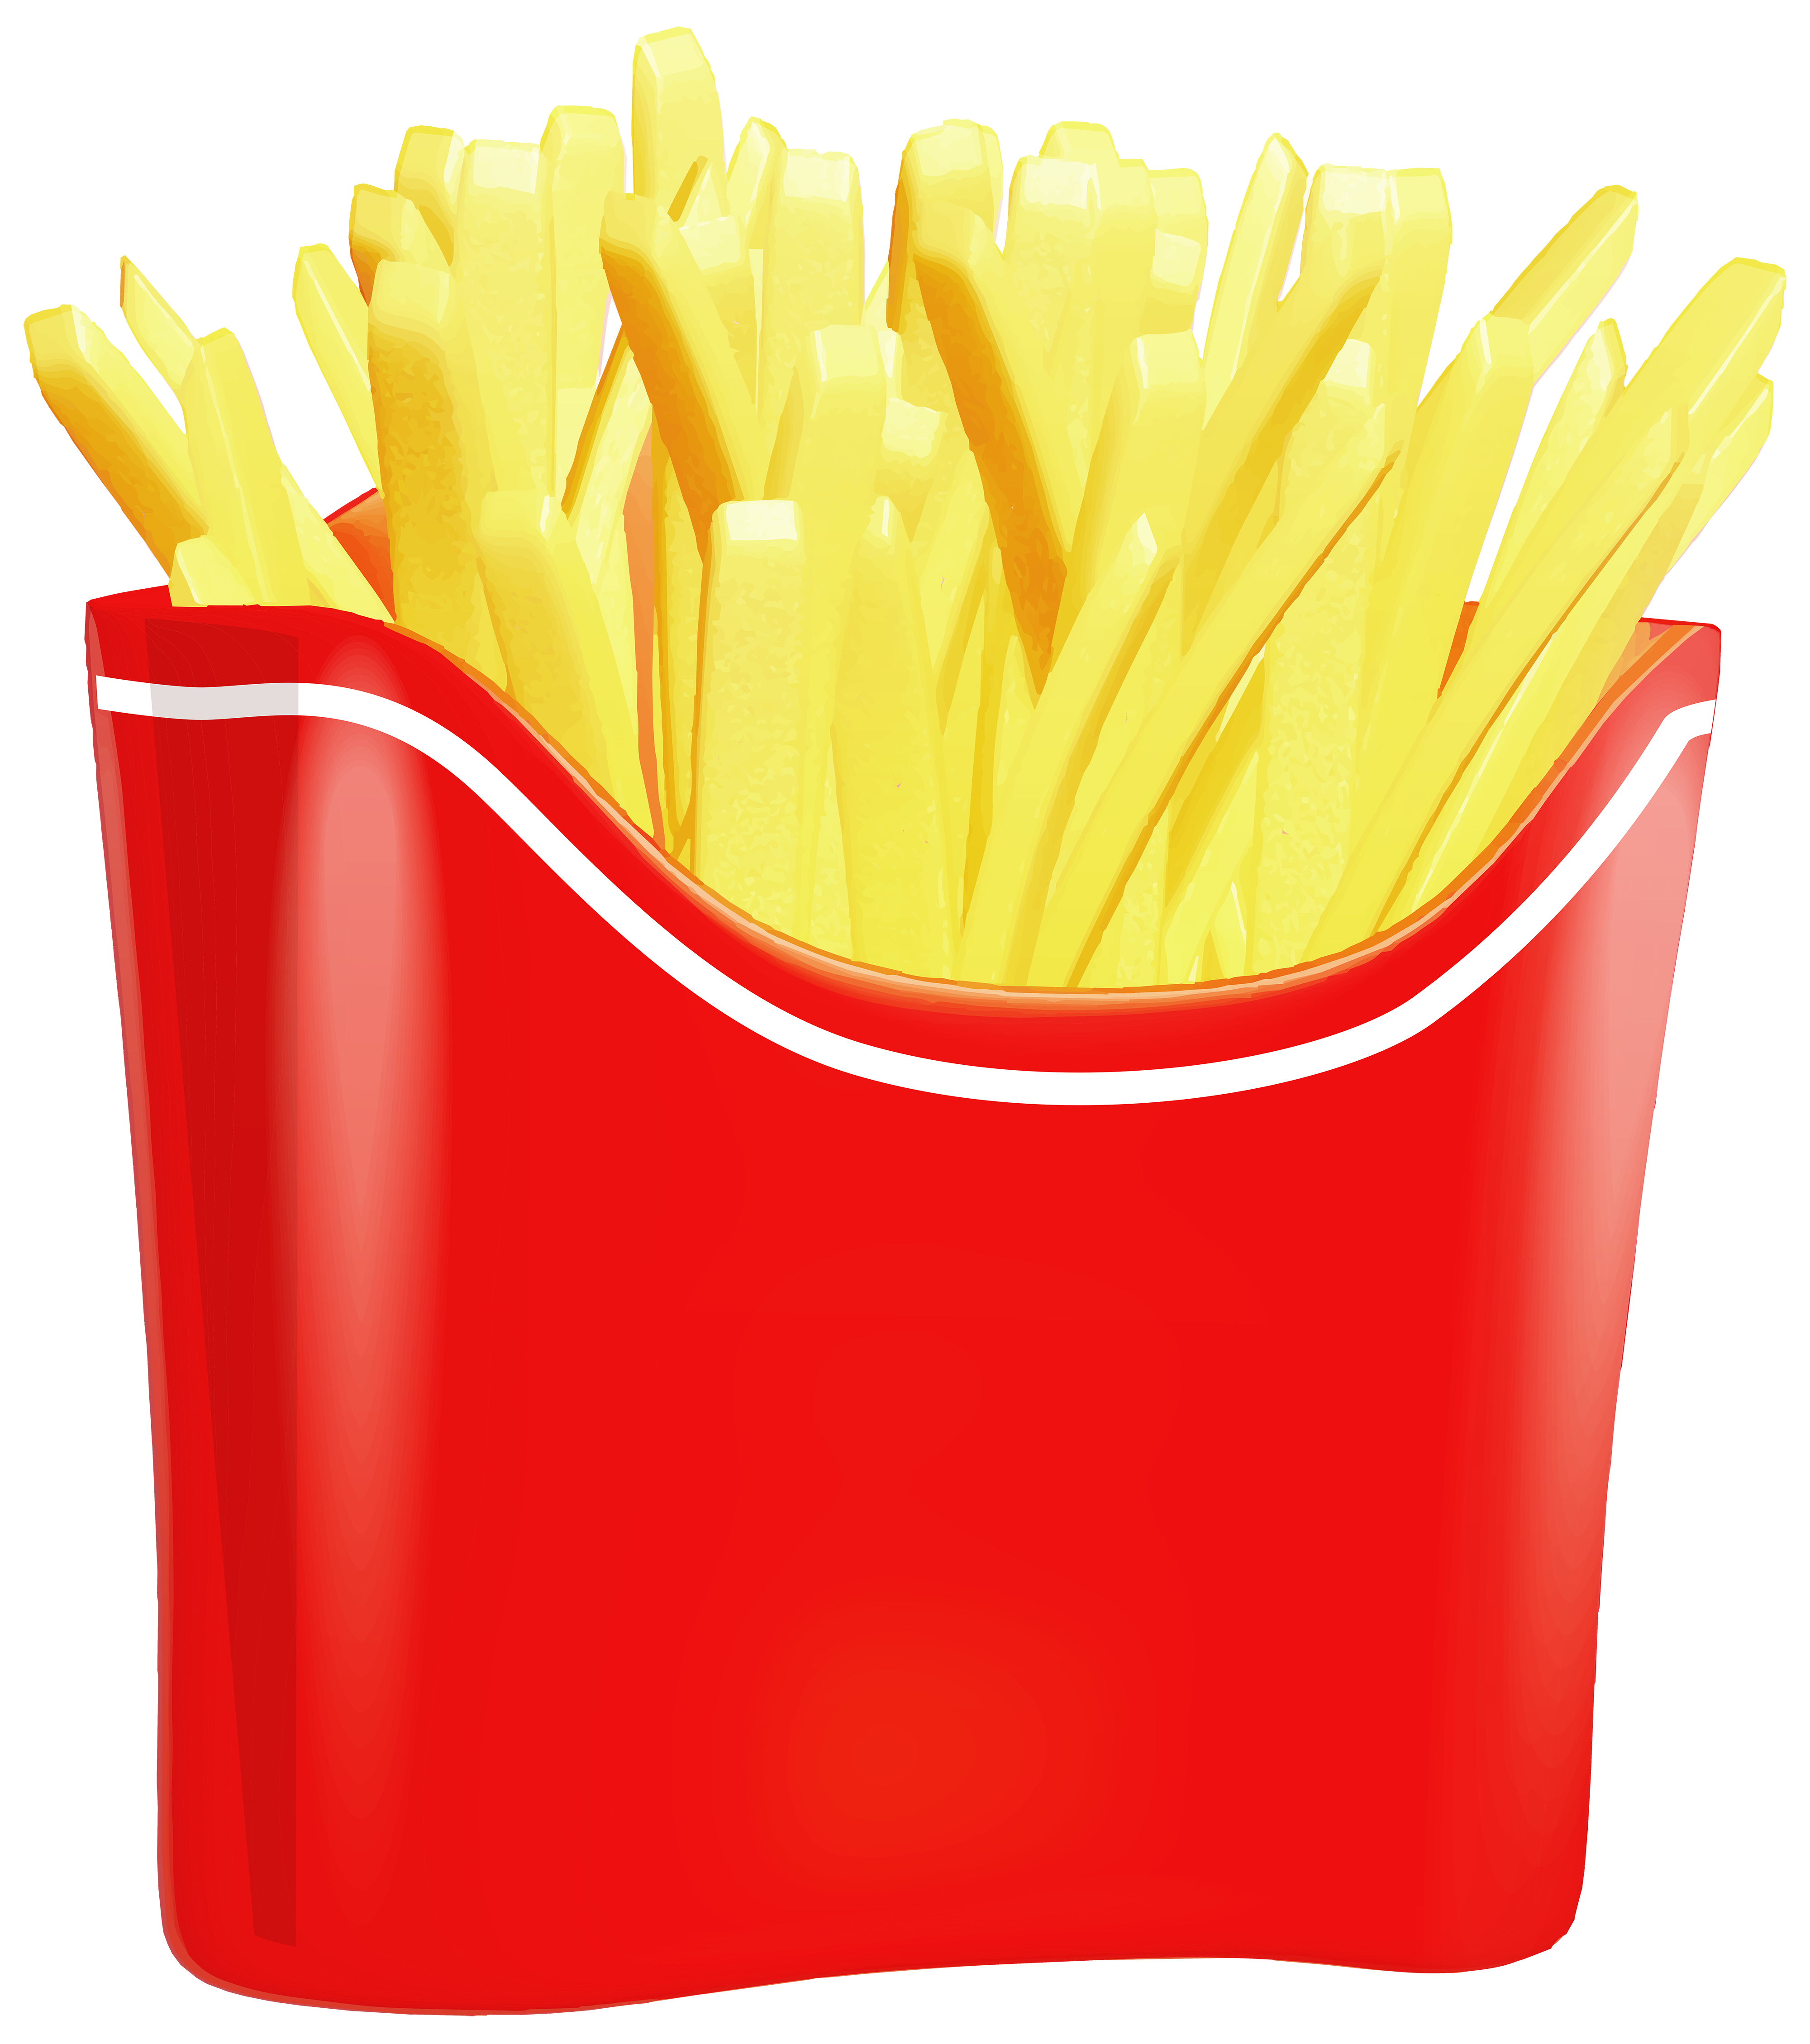 Clipart French Fries - ClipartFest-Clipart french fries - ClipartFest-2